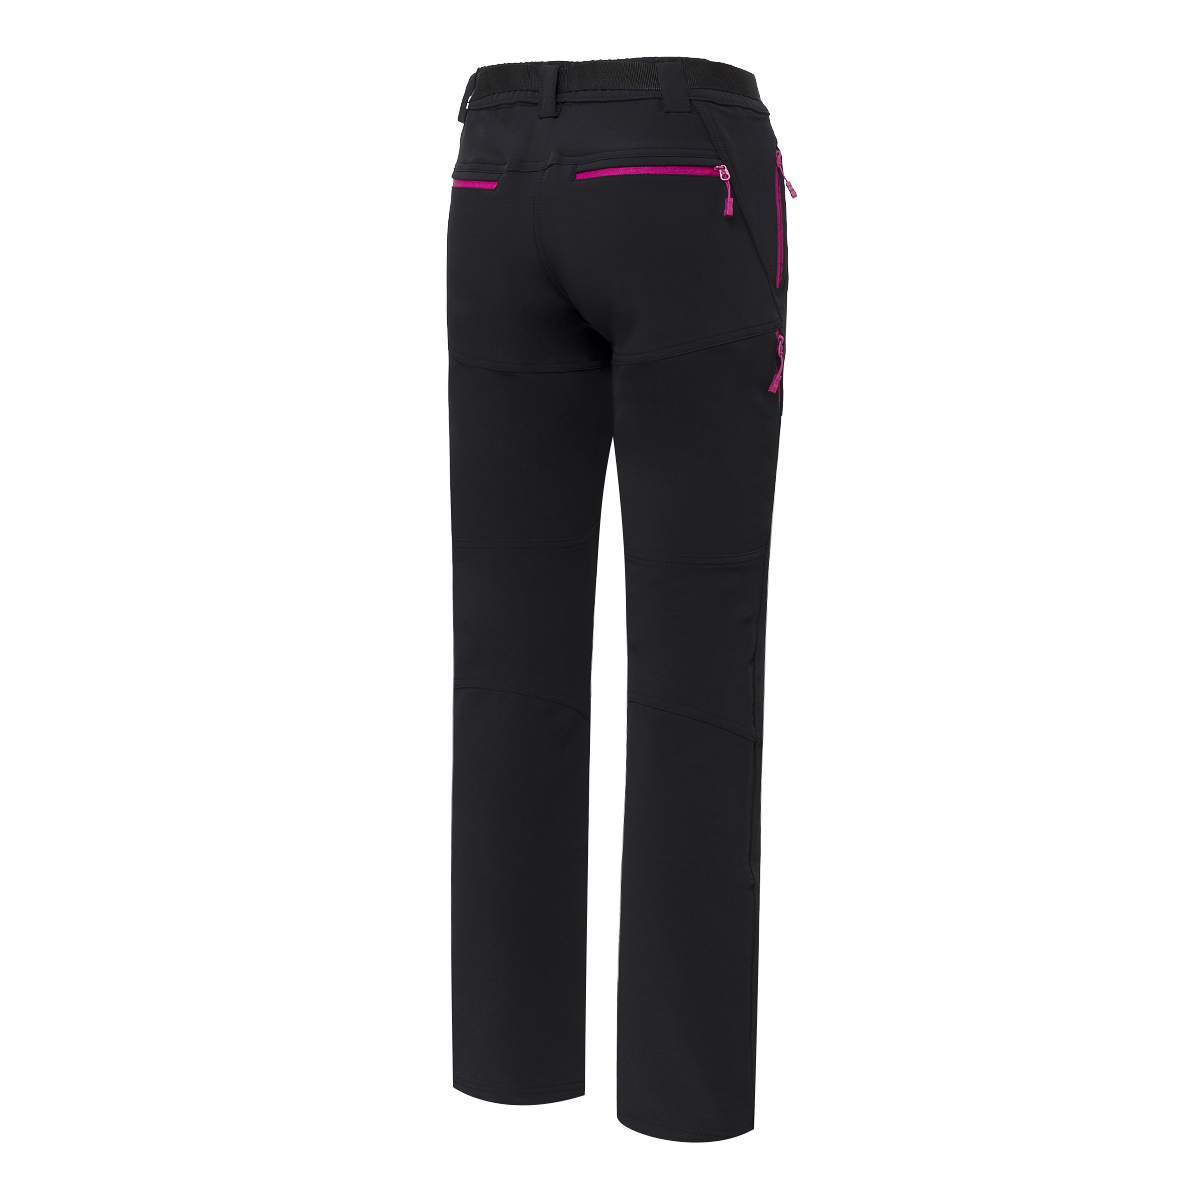 WOMAN'S VALLUNA STRETCH PANT BLACK